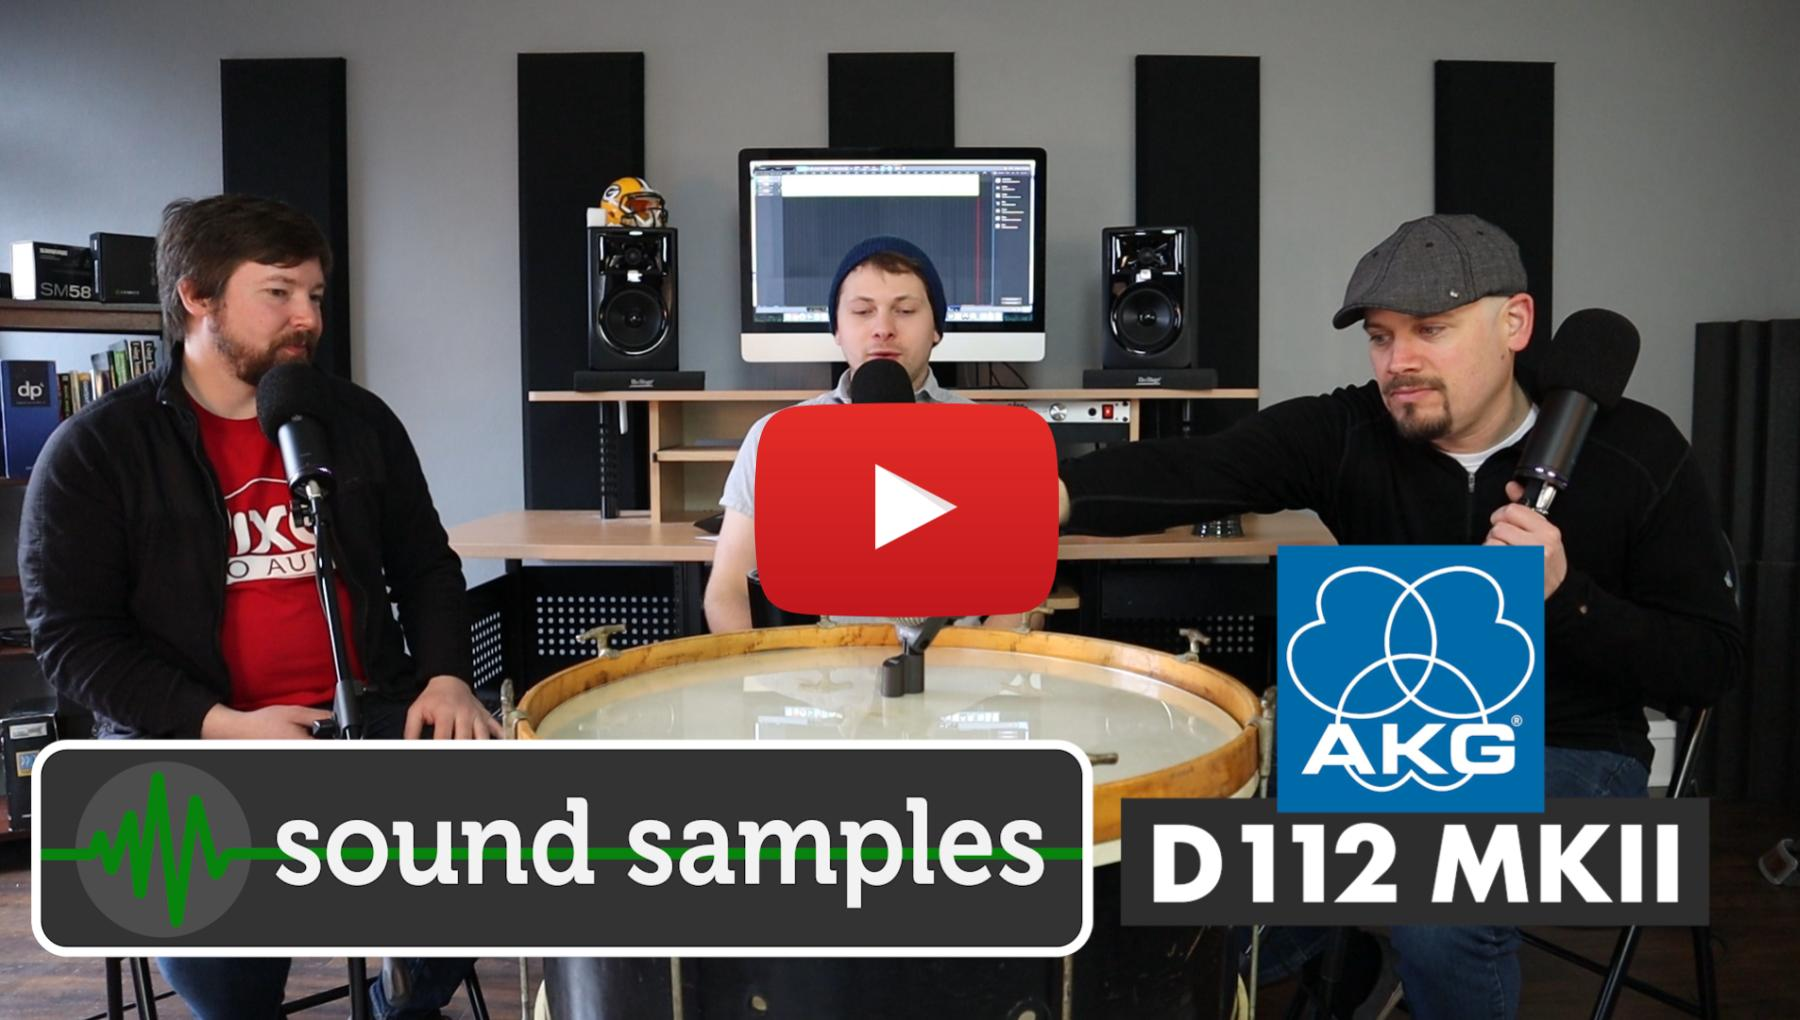 Video Thumbnail - AKG D112 MKII with Sound Samples